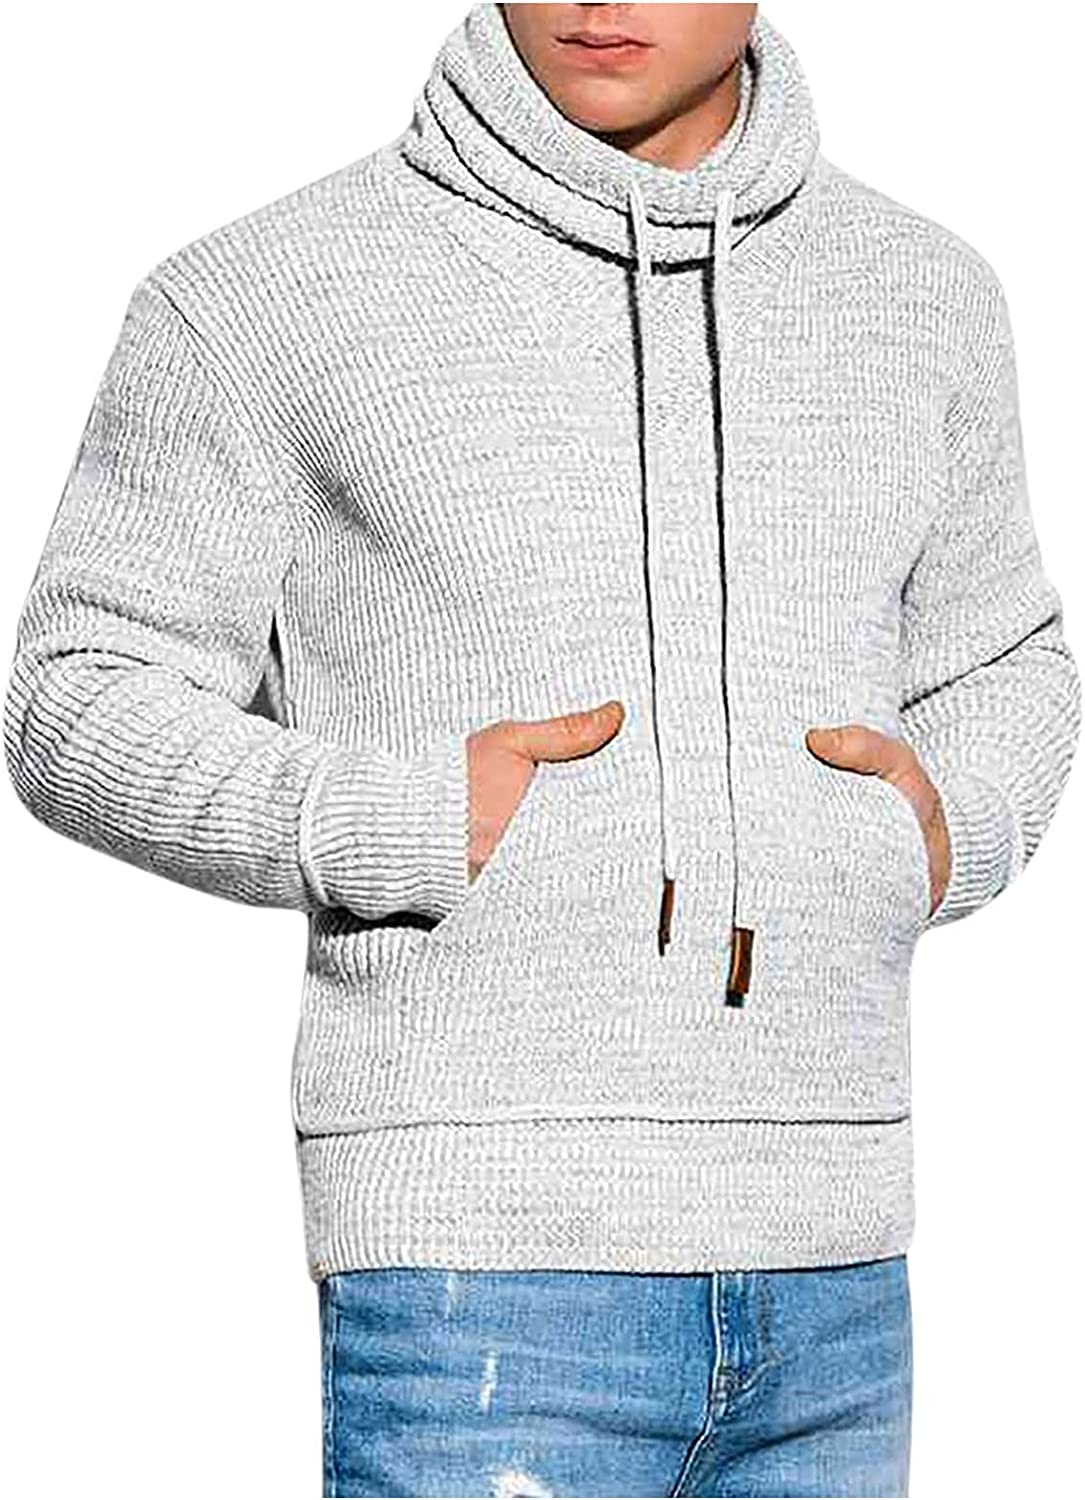 Men's Fall Winter Solid Color Turtleneck Drawstring Stand Collar Knitted Long Sleeve Casual Pullover Sweater